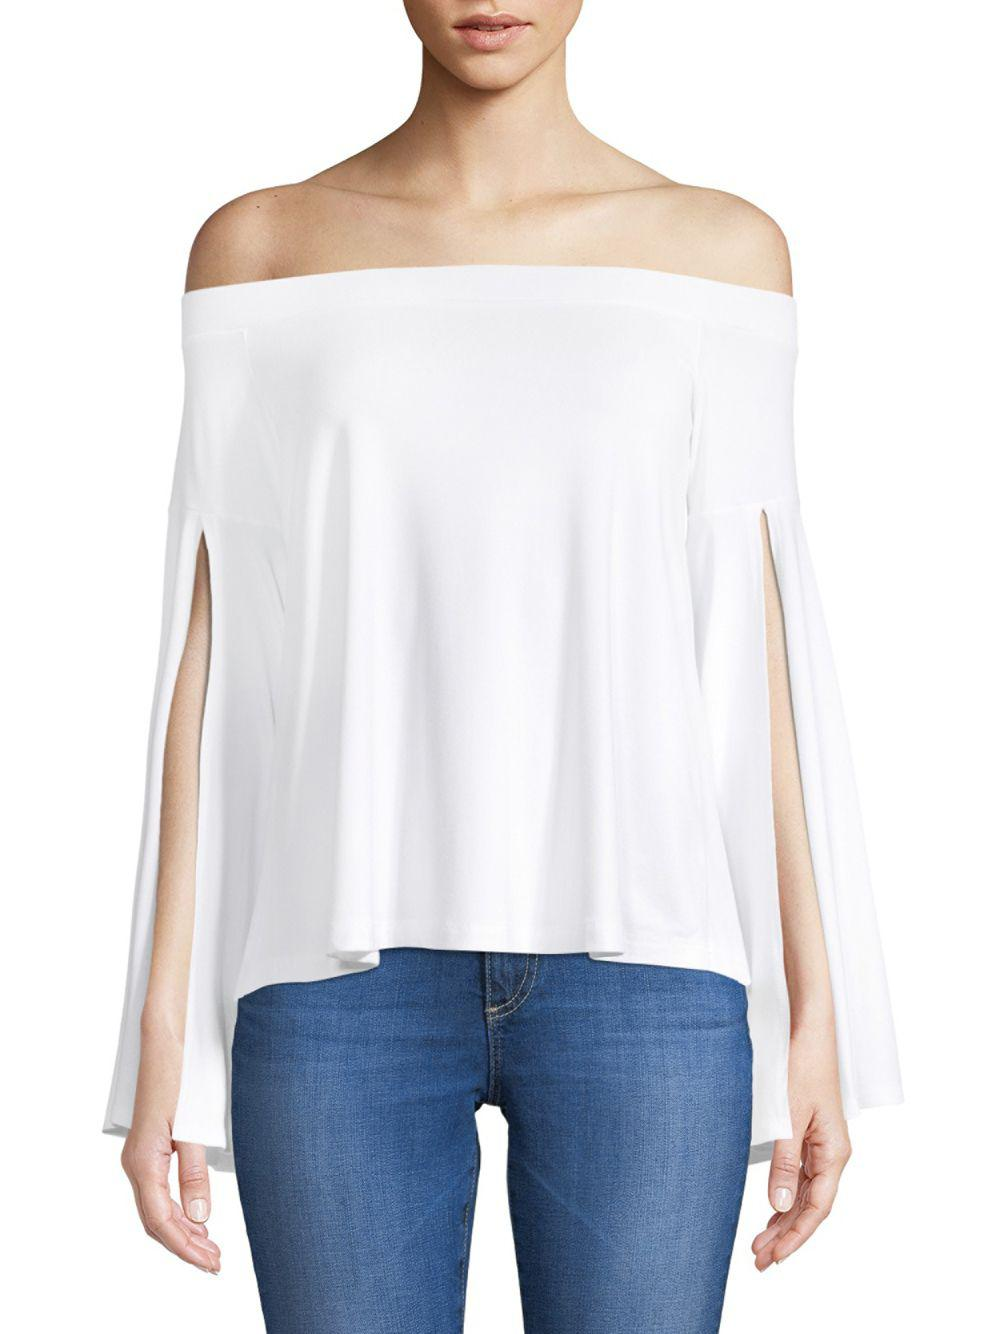 d0d2679be7af3 Lyst - Susana Monaco Slit Off-the-shoulder Top in White